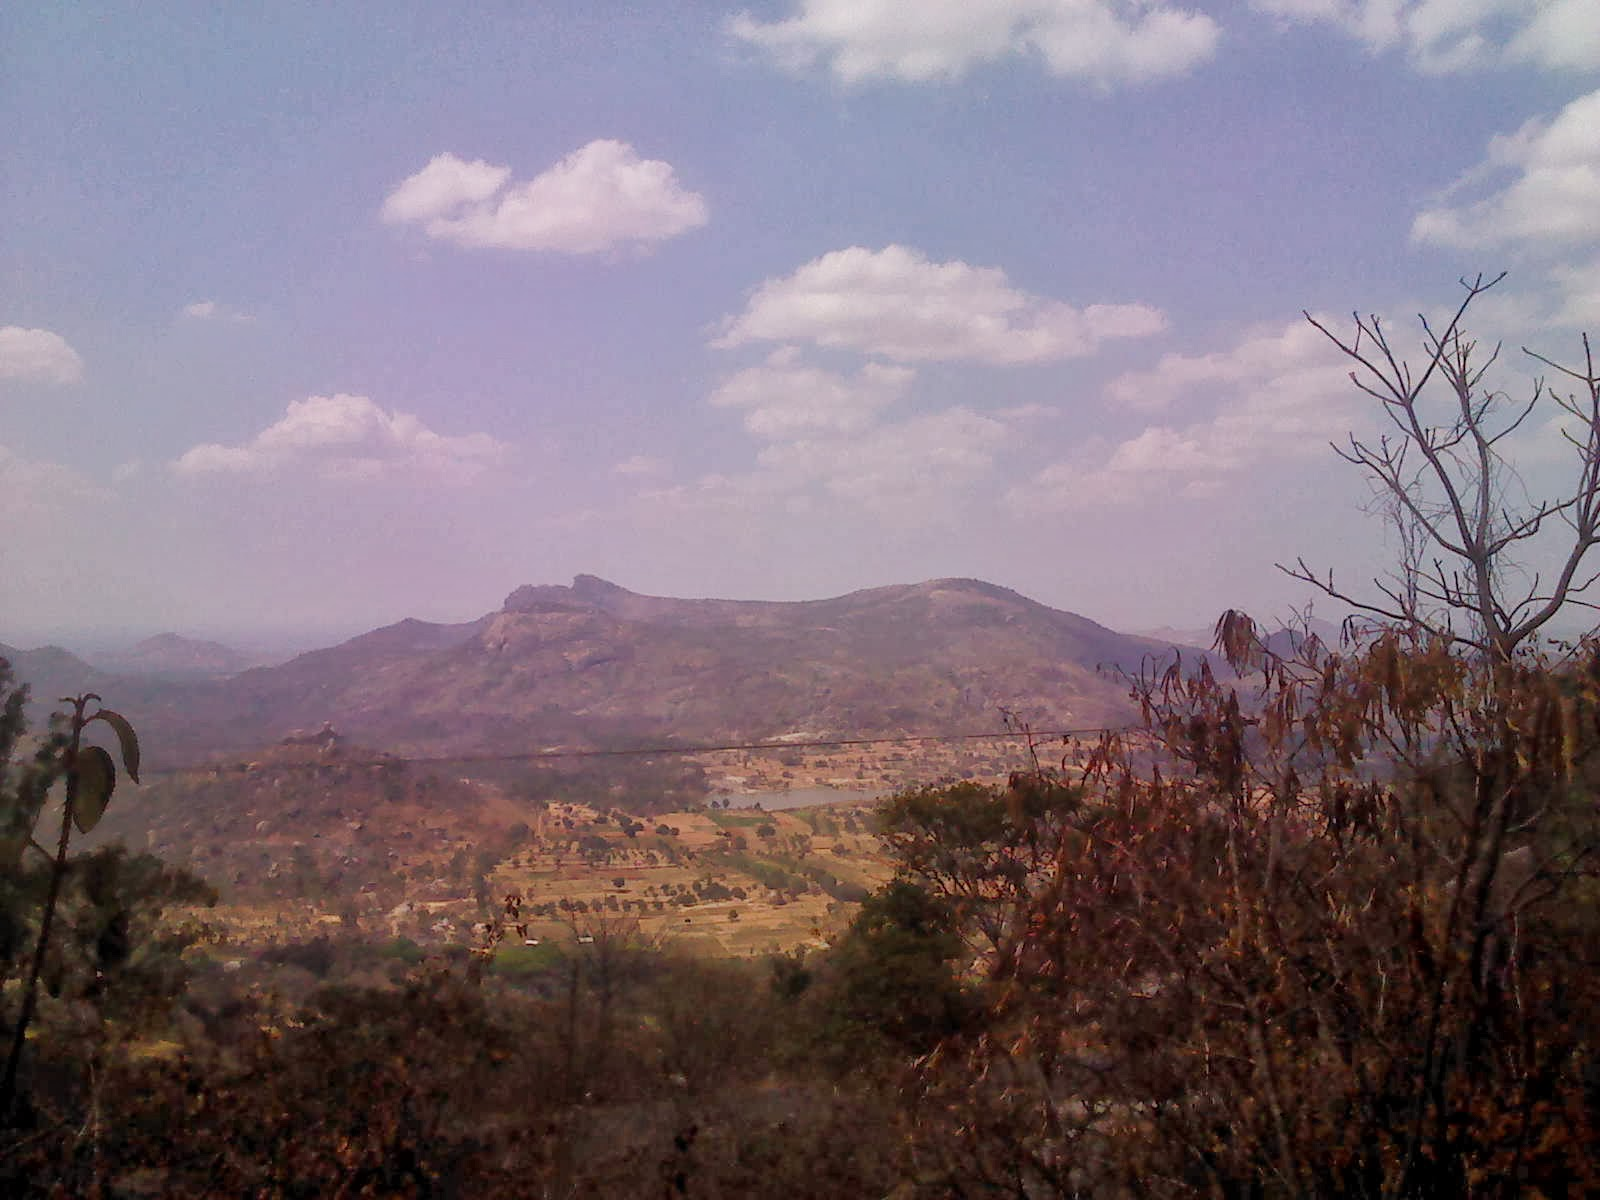 Photo of view from the climb towards Devarayanadurga showing lake